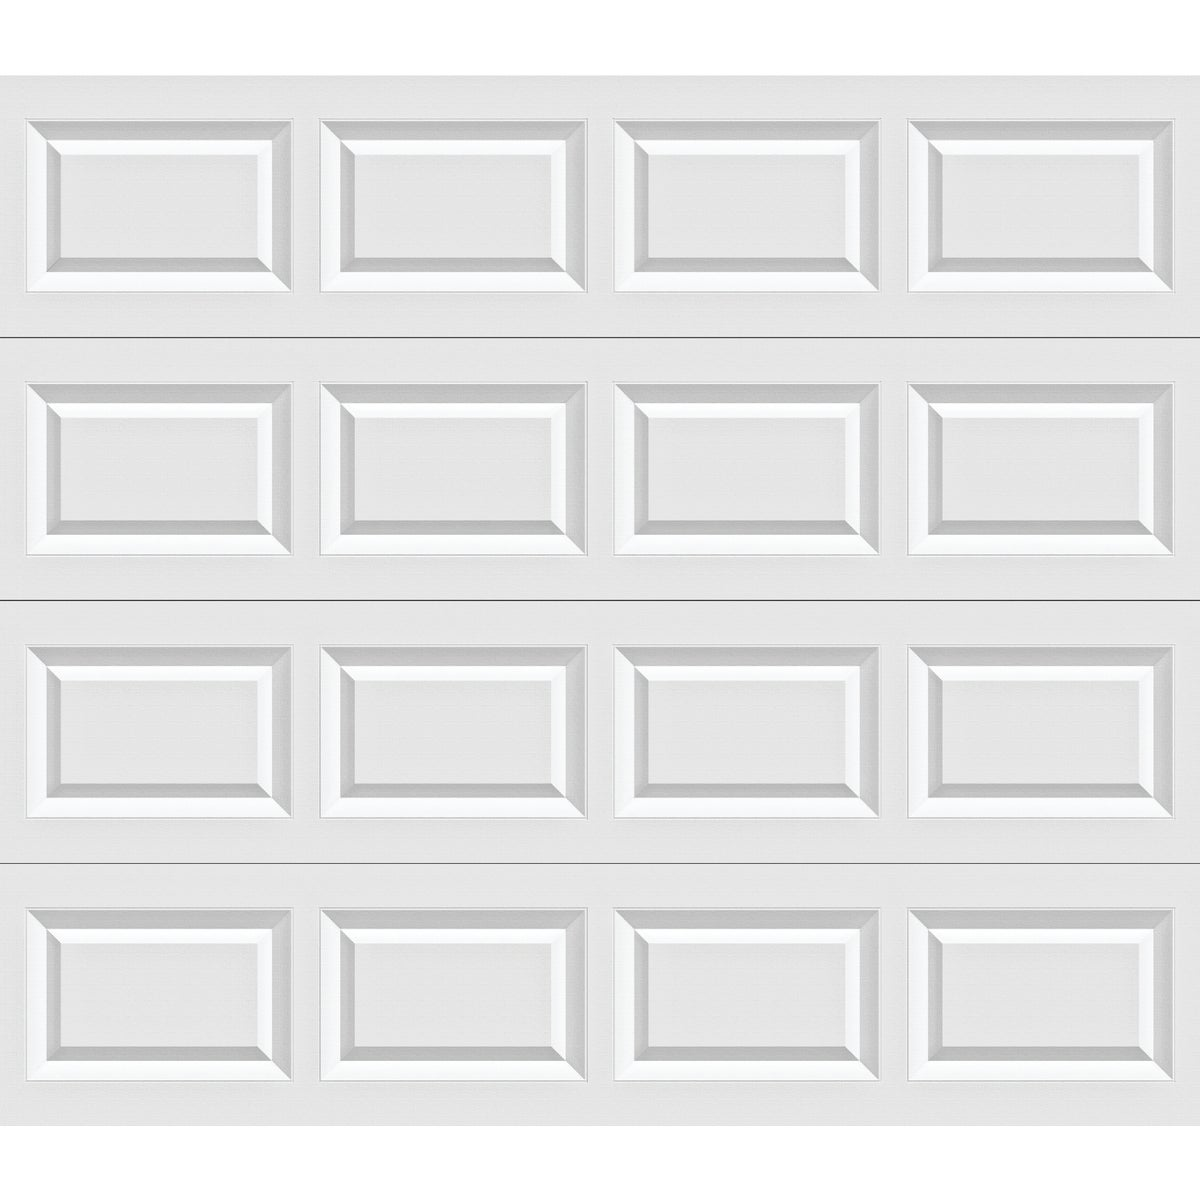 9X7 WHT STL GARAGE DOOR - A632163 by Holmes Garage Doors